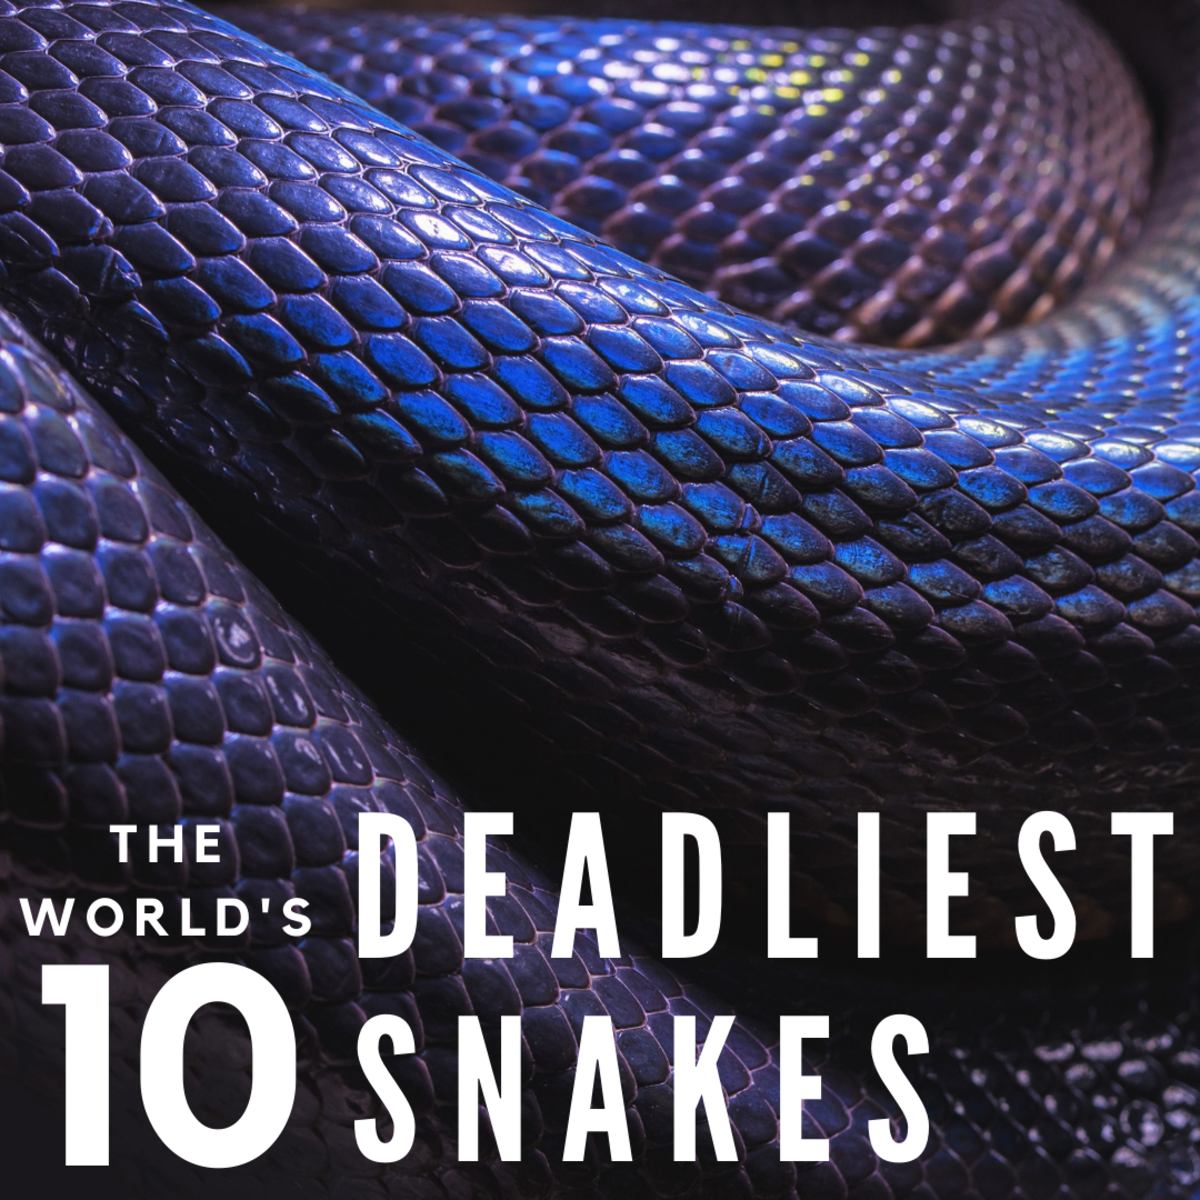 The Top 10 Deadliest and Most Dangerous Snakes in the World